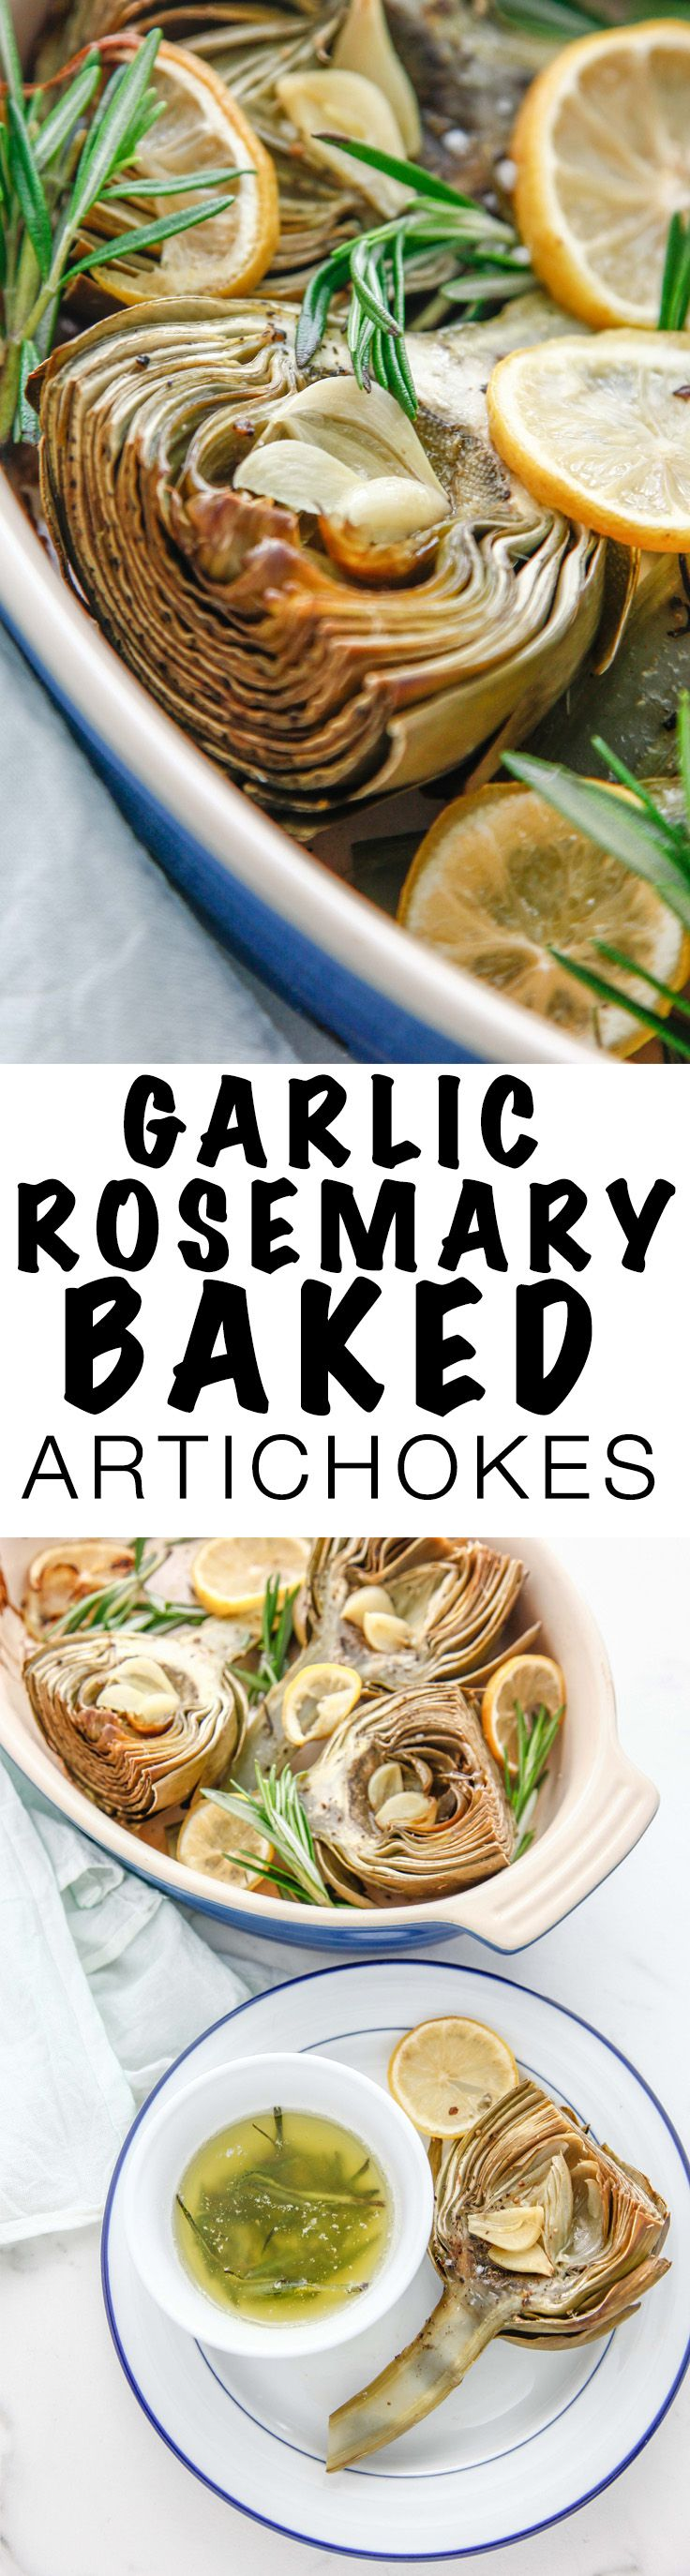 Get ready to bake your favorite spring vegetable with this Garlic Rosemary Baked Artichoke recipe. Make these veggies your new favorite Italian inspired dish!